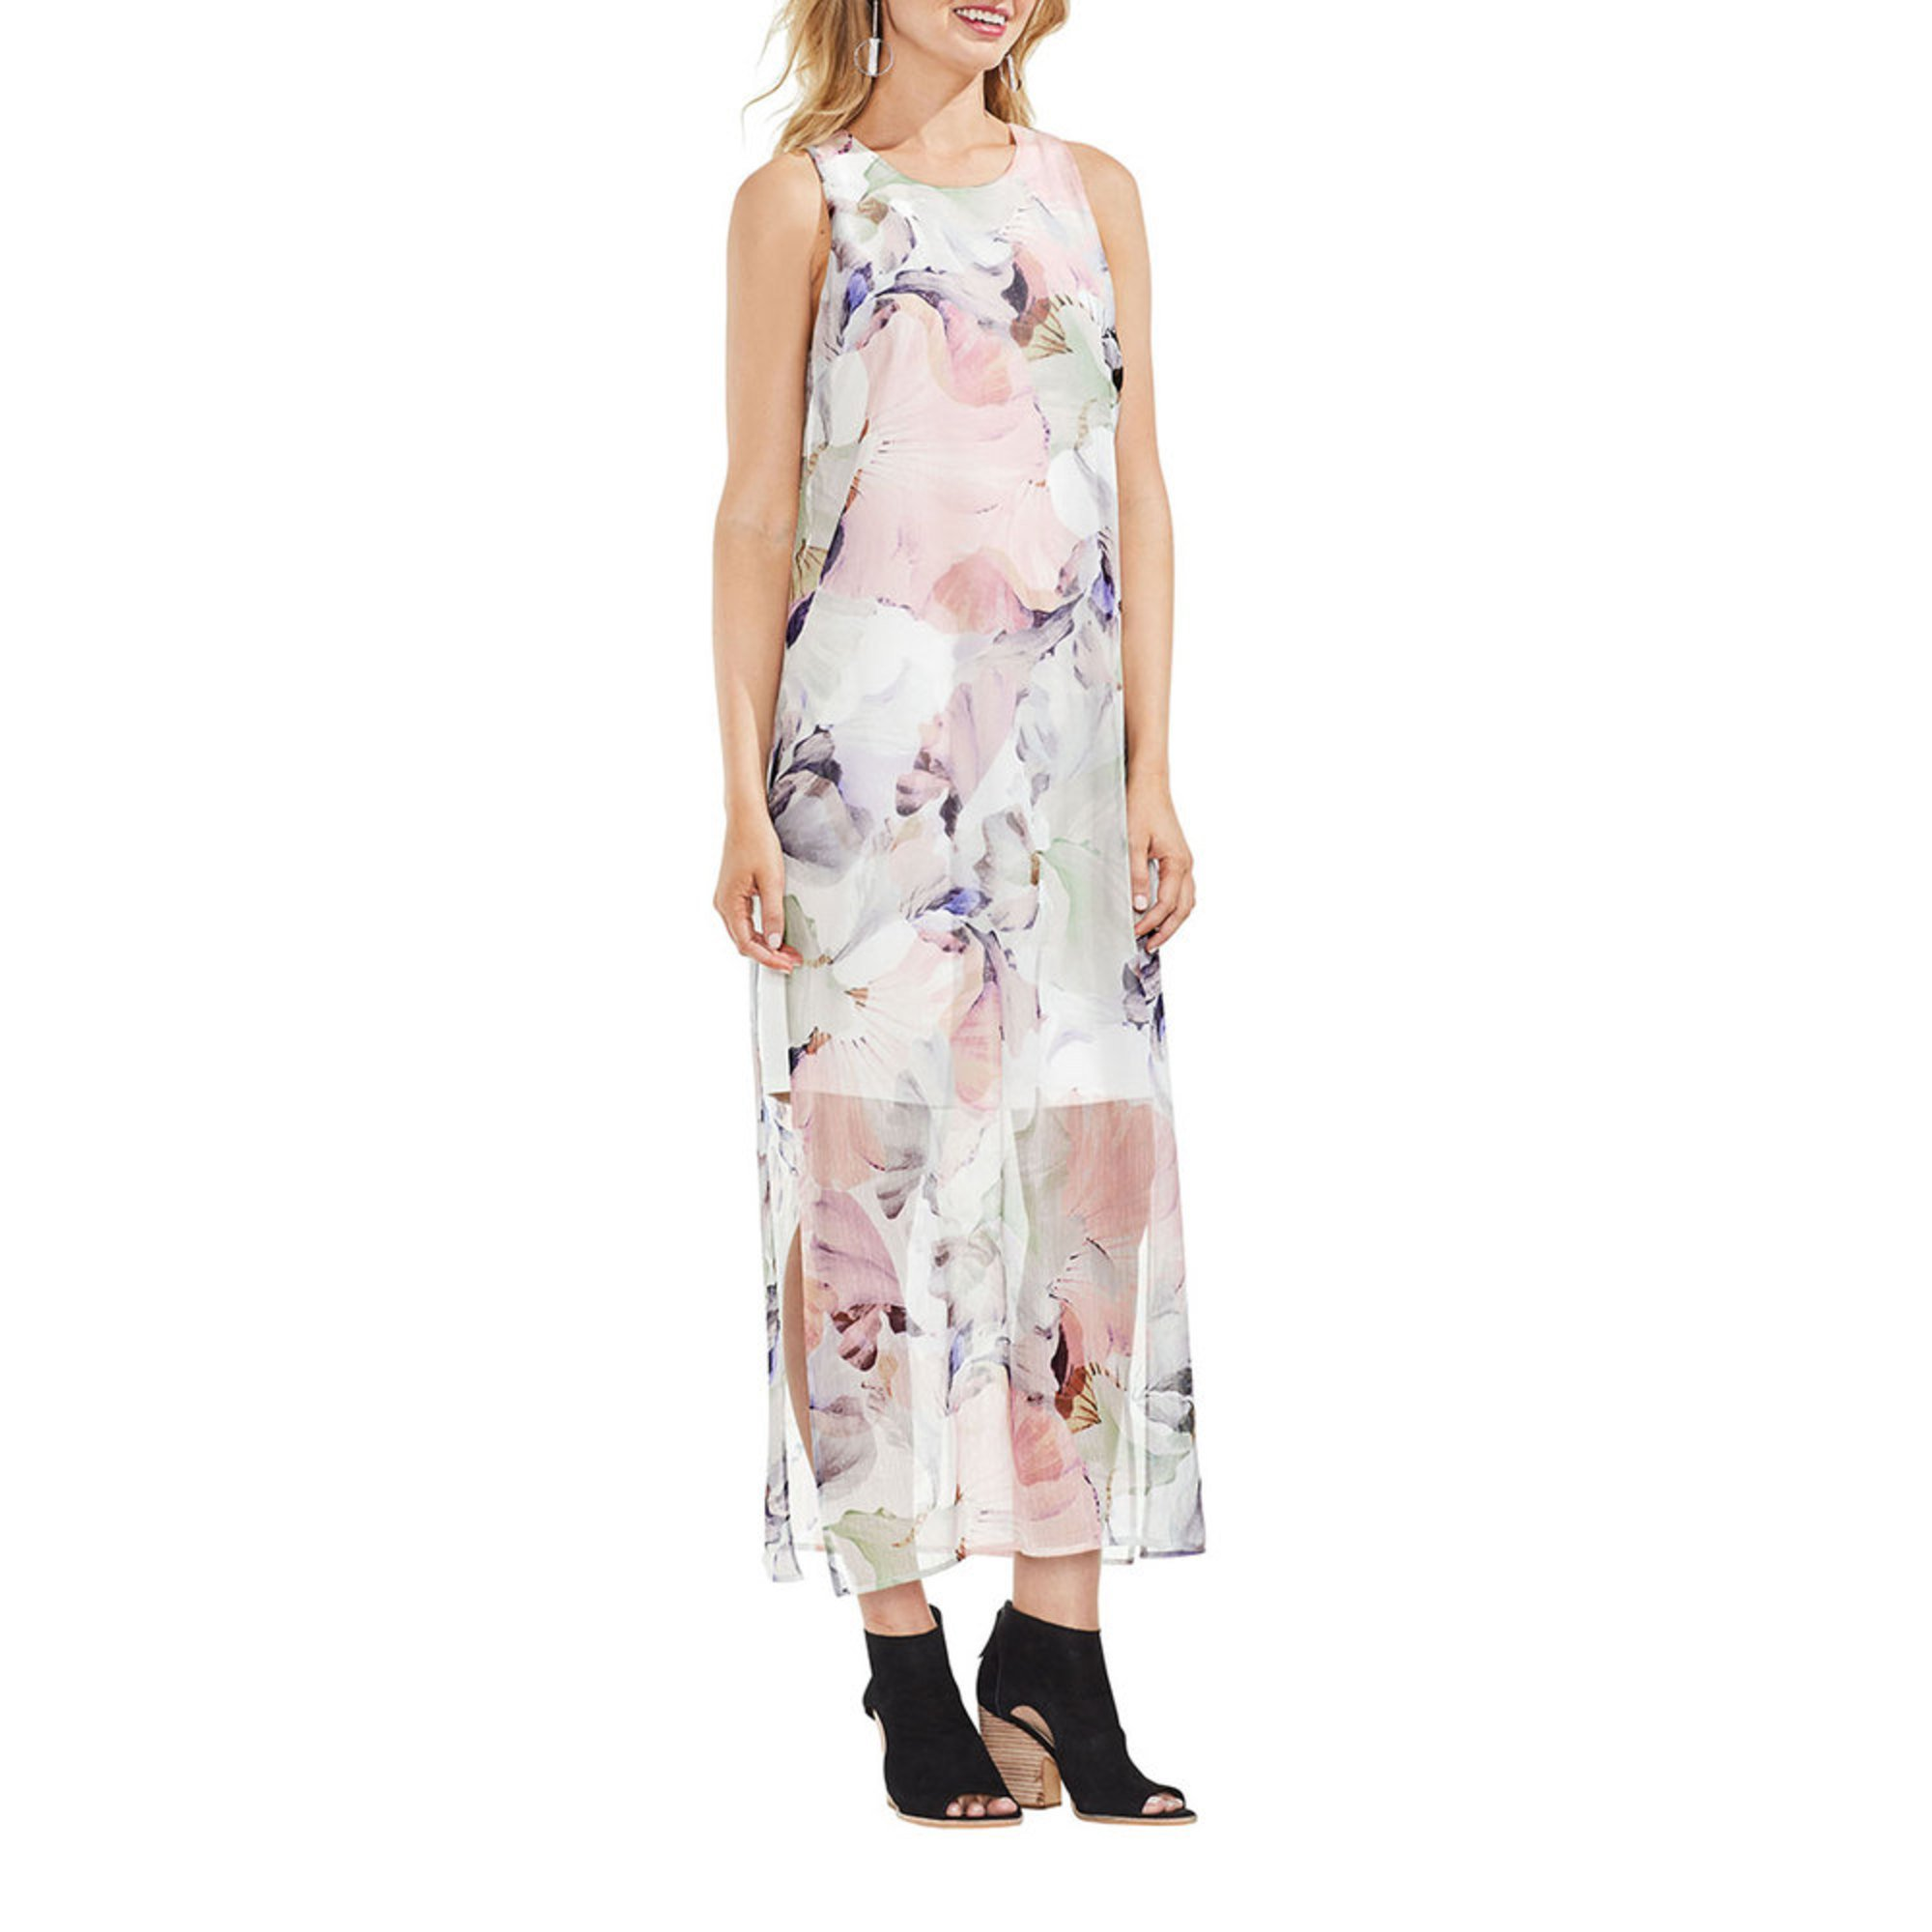 Vince Camuto Women\'s Watercolor Floral Chiffon Overlay Dress In New ...